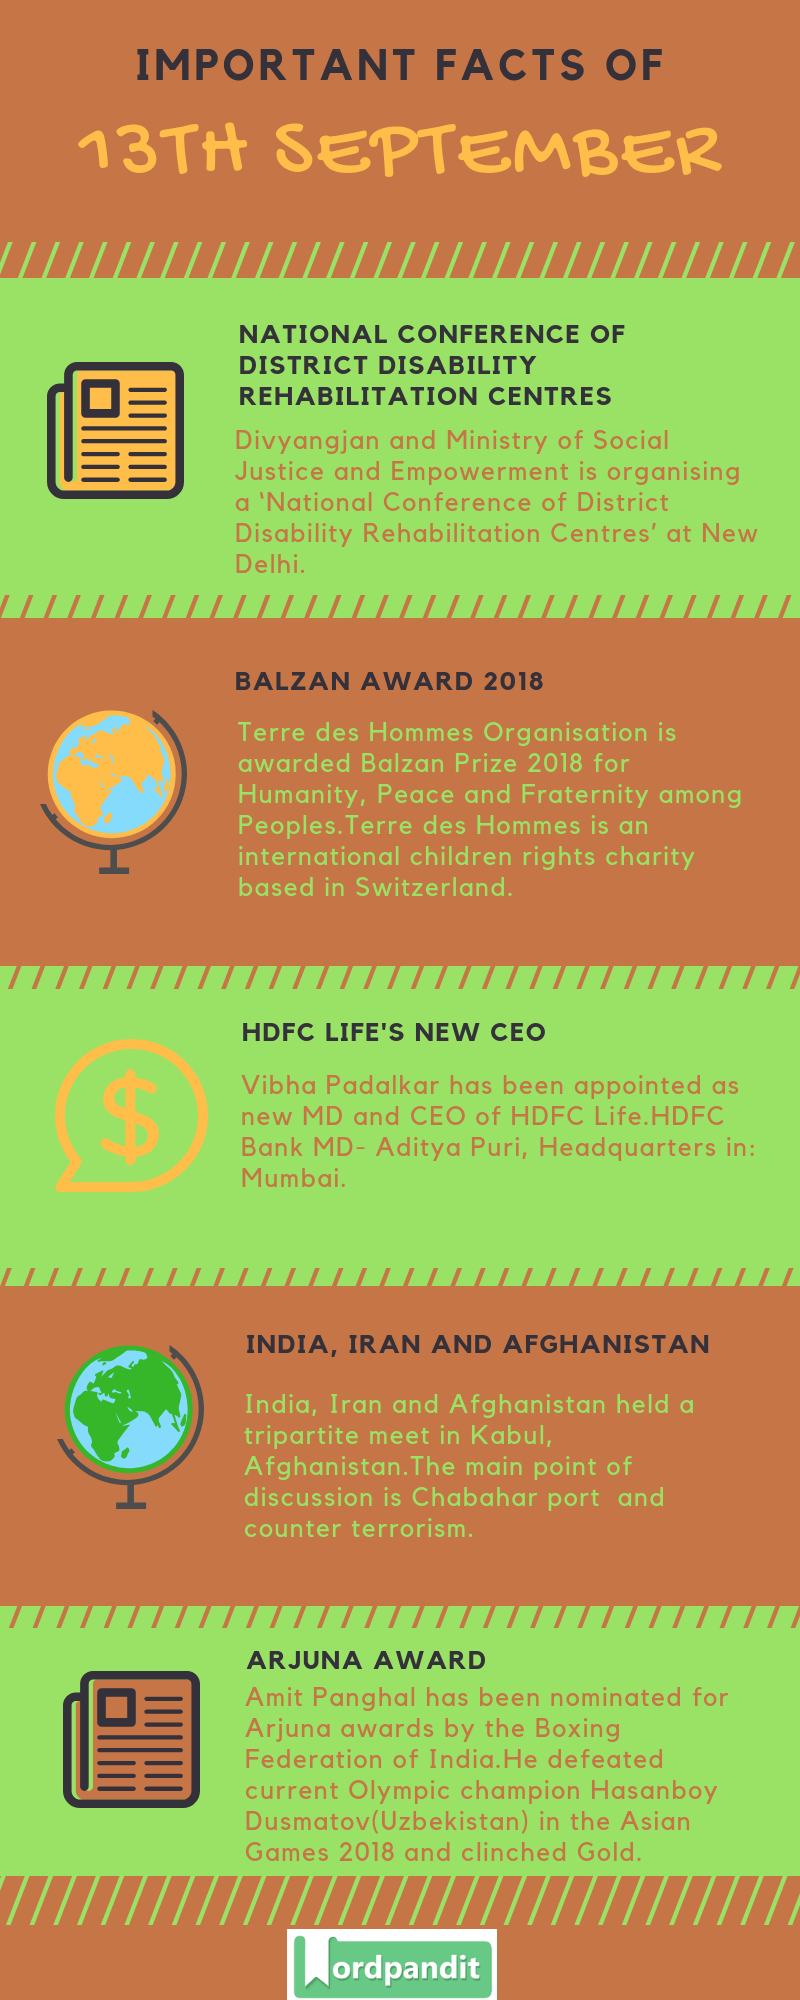 Daily Current Affairs 13 September 2018 Current Affairs Quiz 13 September 2018 Current Affairs Infographic